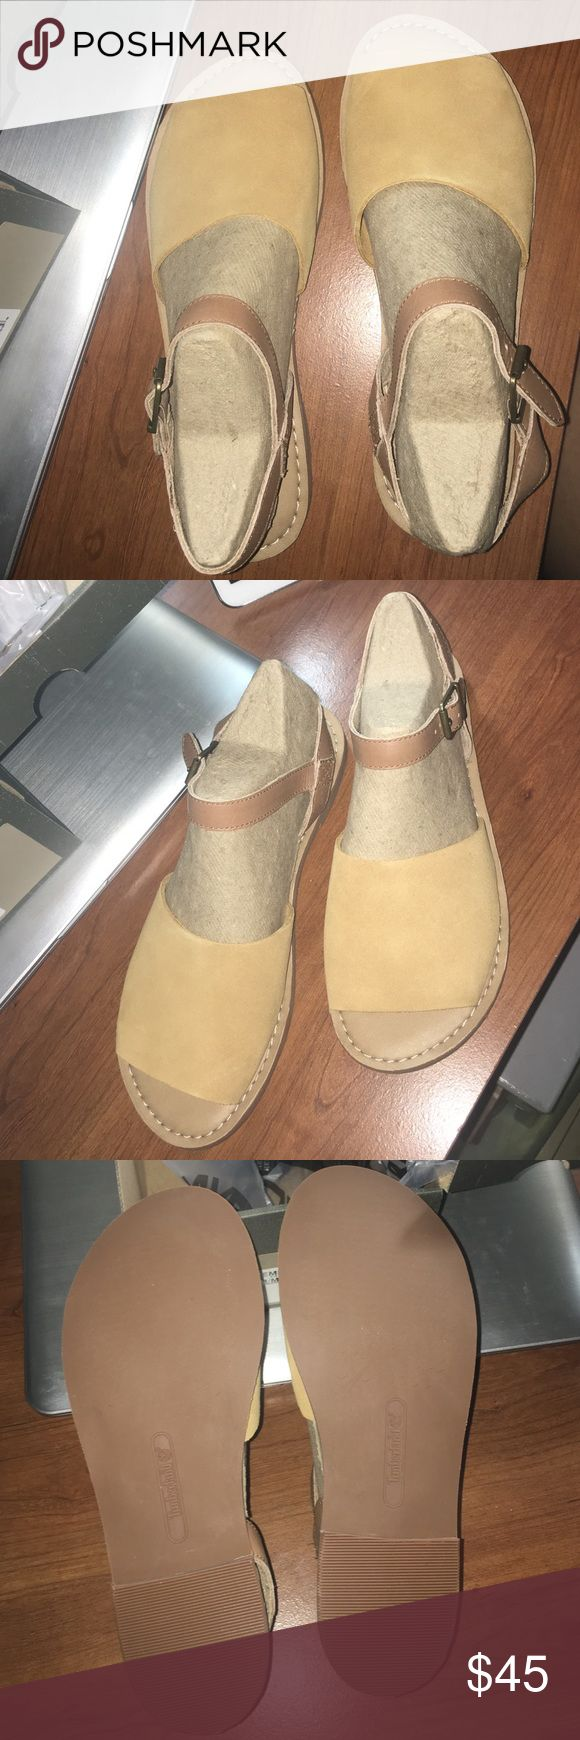 Timberland Sandal Wheat suede timberland sandal. Just bought, never worn. Timberland Shoes Sandals